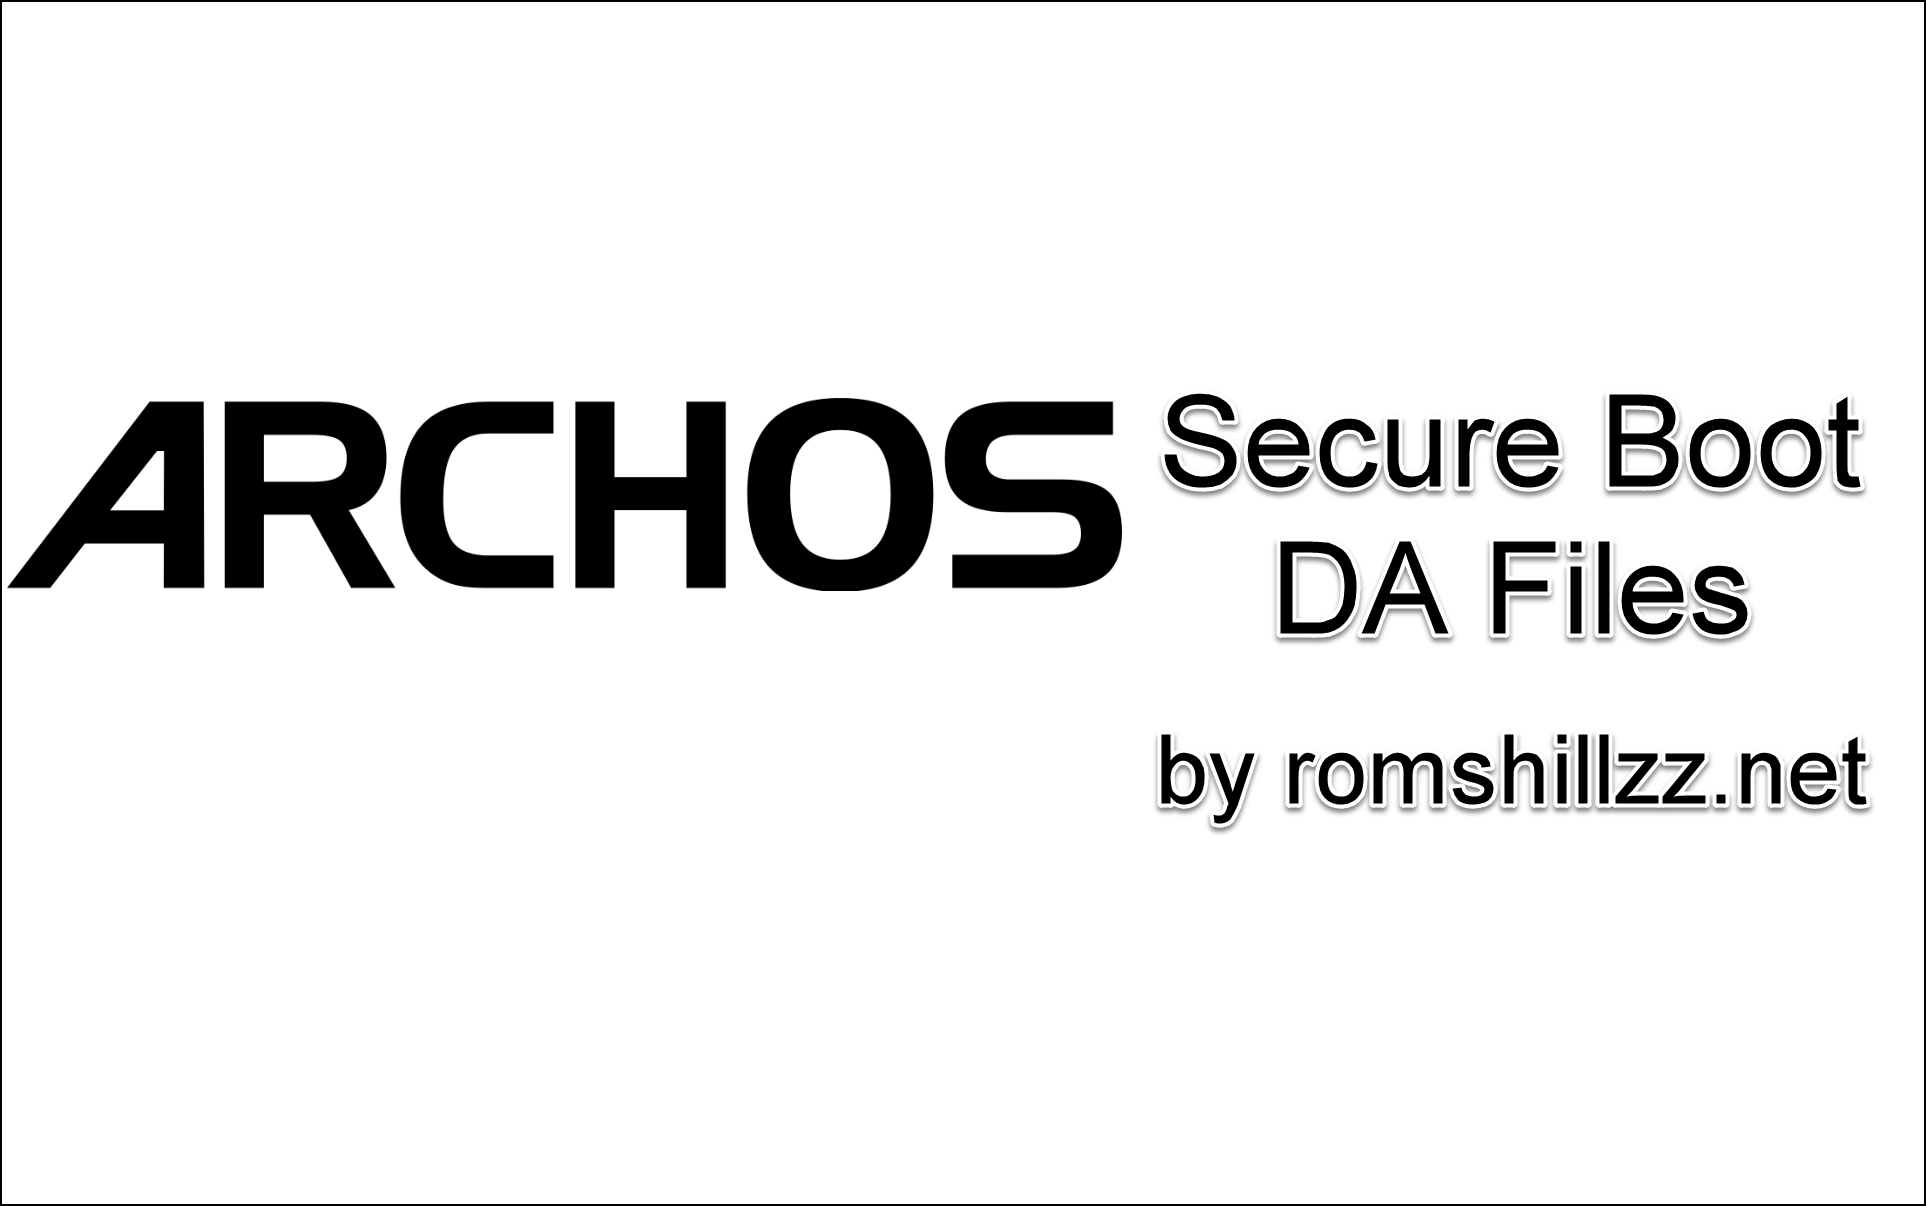 archos-secure-boot.png